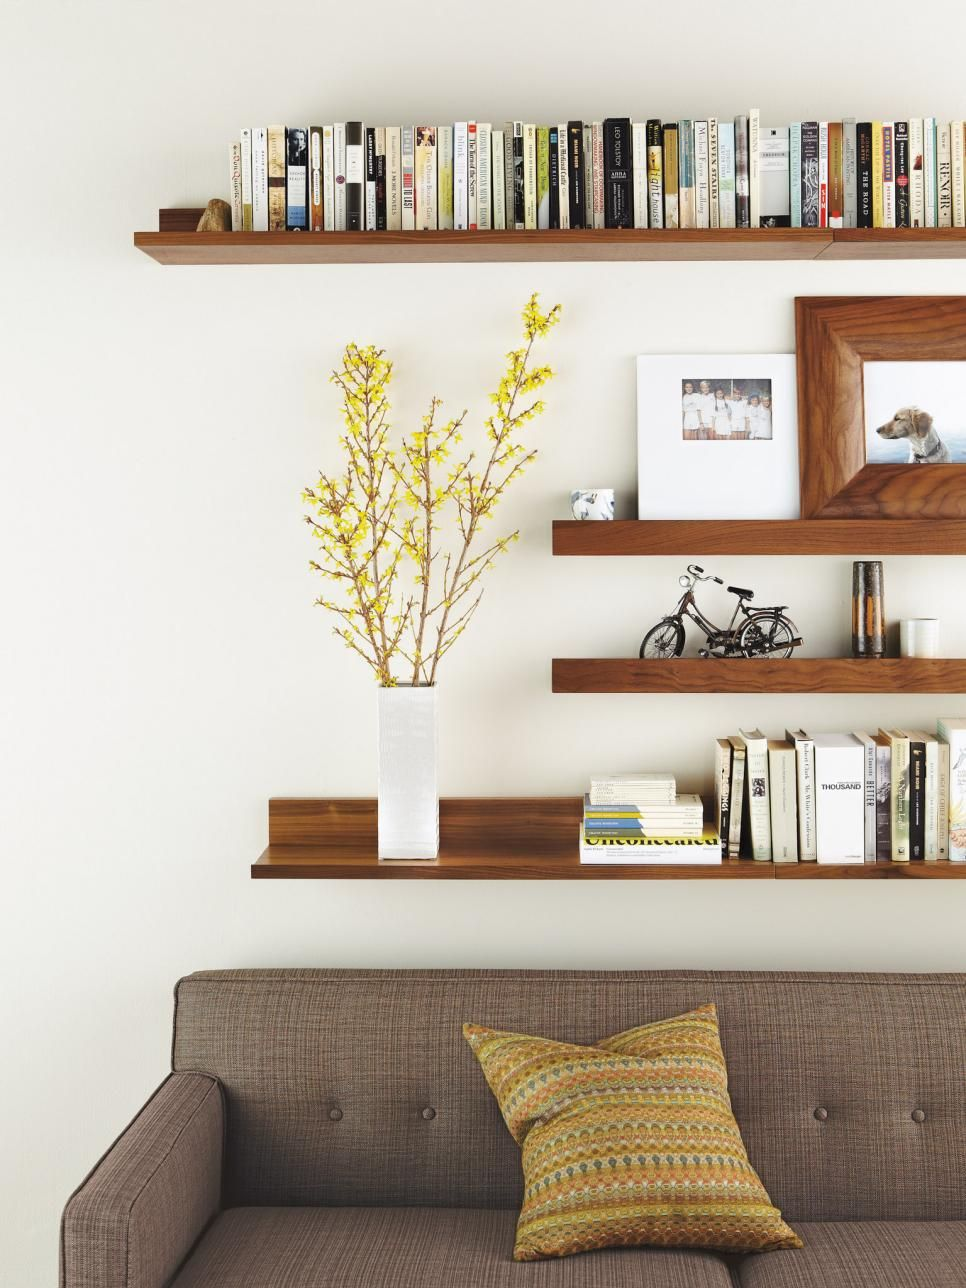 Modern Living Room With Wall Mounted Shelves Floating Shelves Living Room Bookshelves In Living Room Wall Shelves Living Room